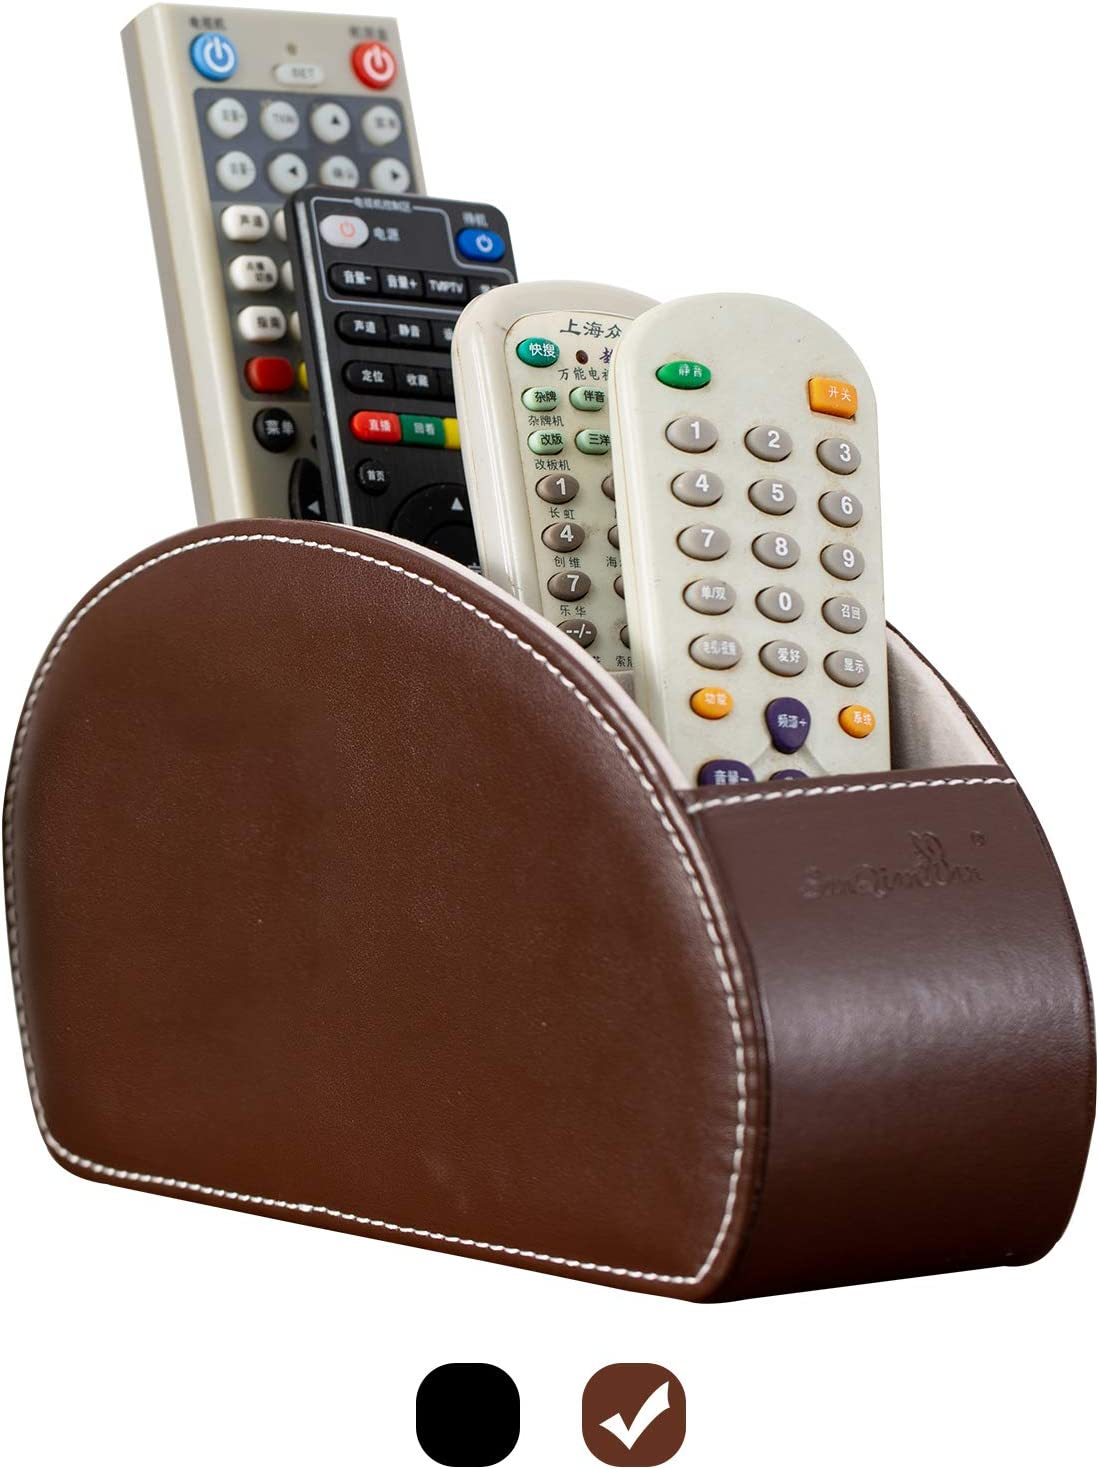 Tv Remote Control Holders Organizer Box with 5 Compartment PU Leather Multi-functional Office Organization and Storage Caddy Store Tv Remote Holders,Brush,Pencil,Glasses and Media Player (Nut brown1)